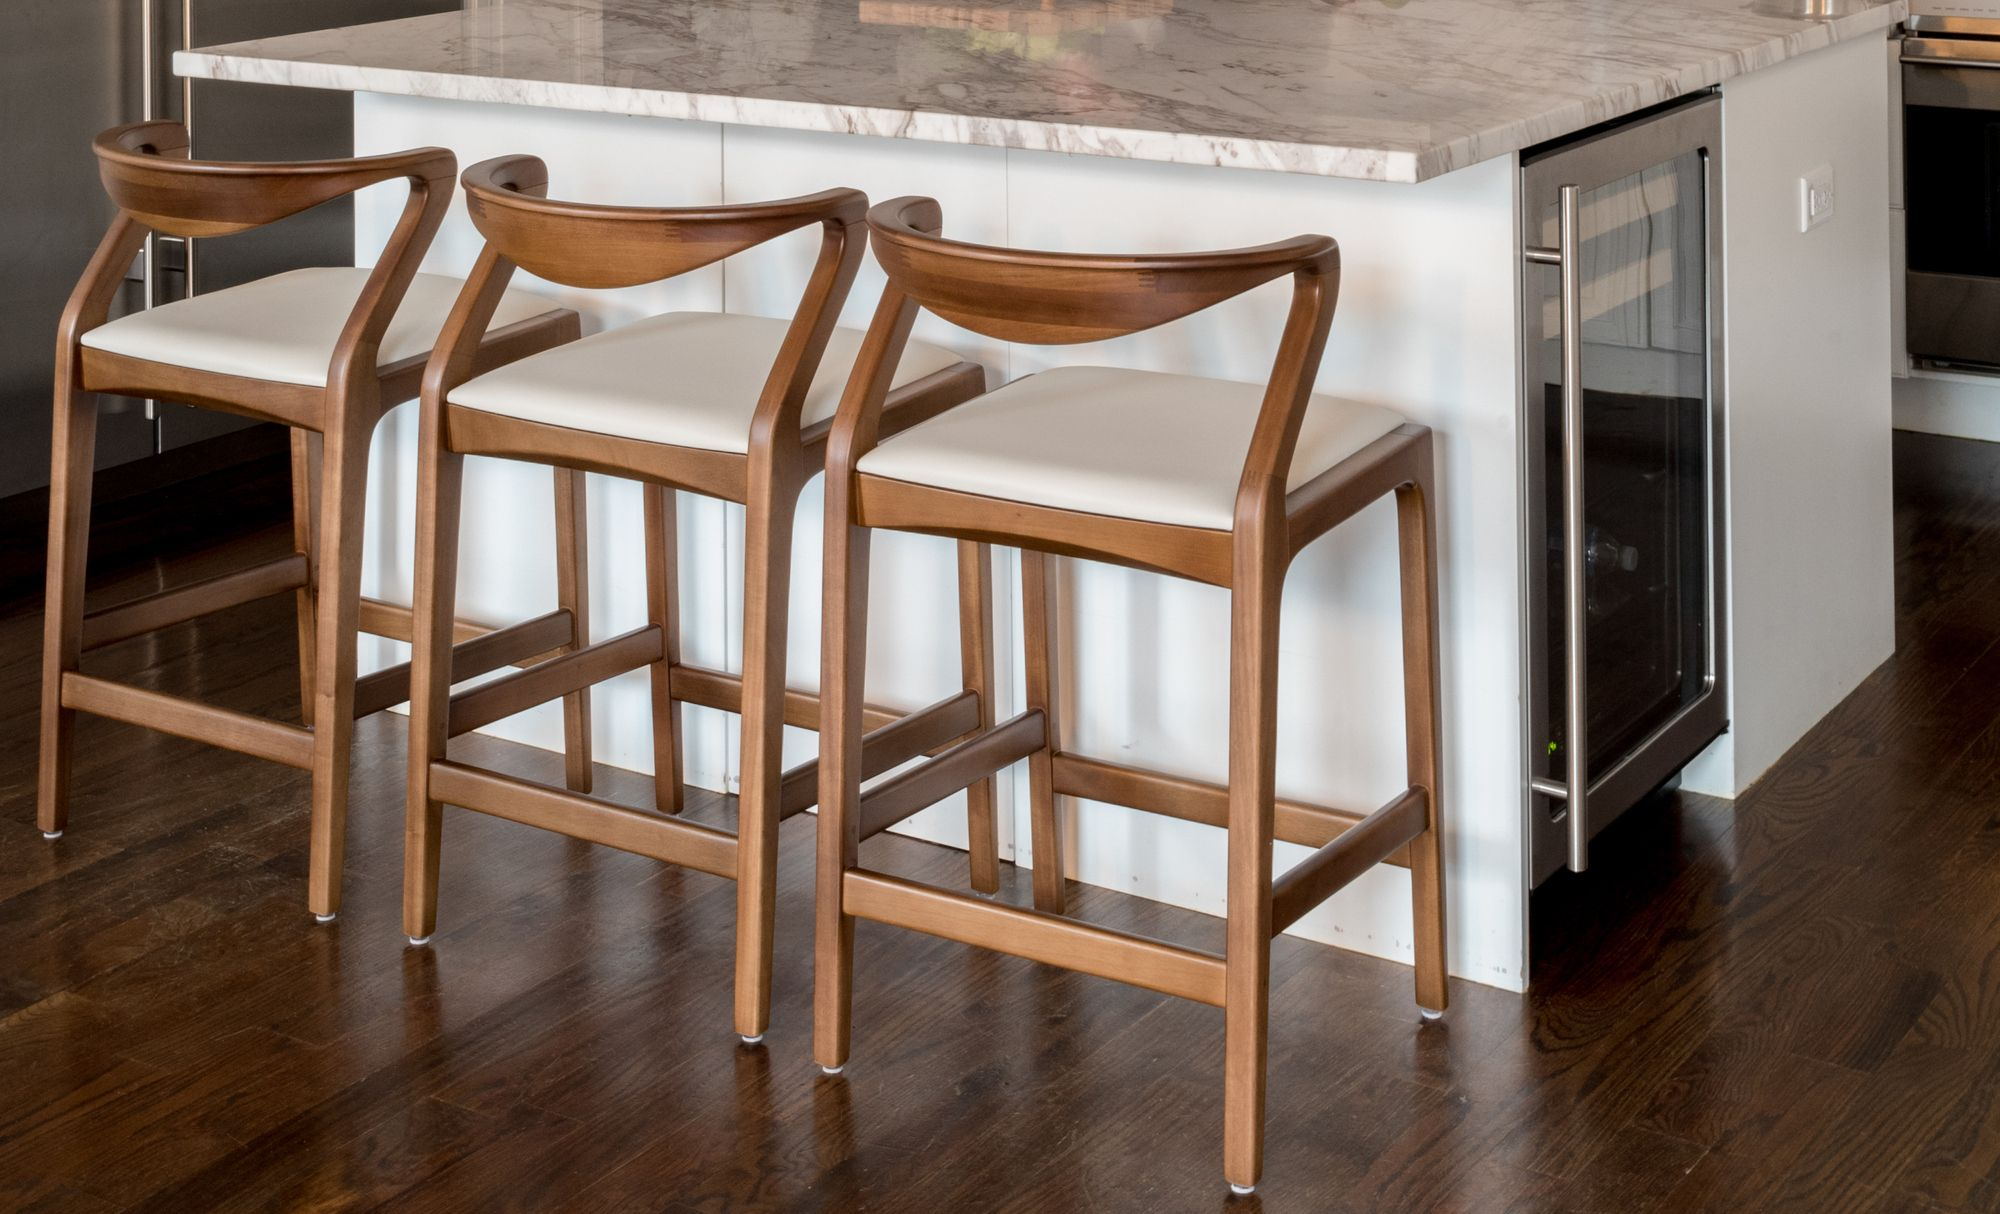 Duda Stool By Aristeu Pires Available At Sossego Contemporary Brazilian Design Kitchen Bar Dining Room Contemporary Bar Stools Bar Stools Kitchen Bar Stools Kitchen bar stools modern